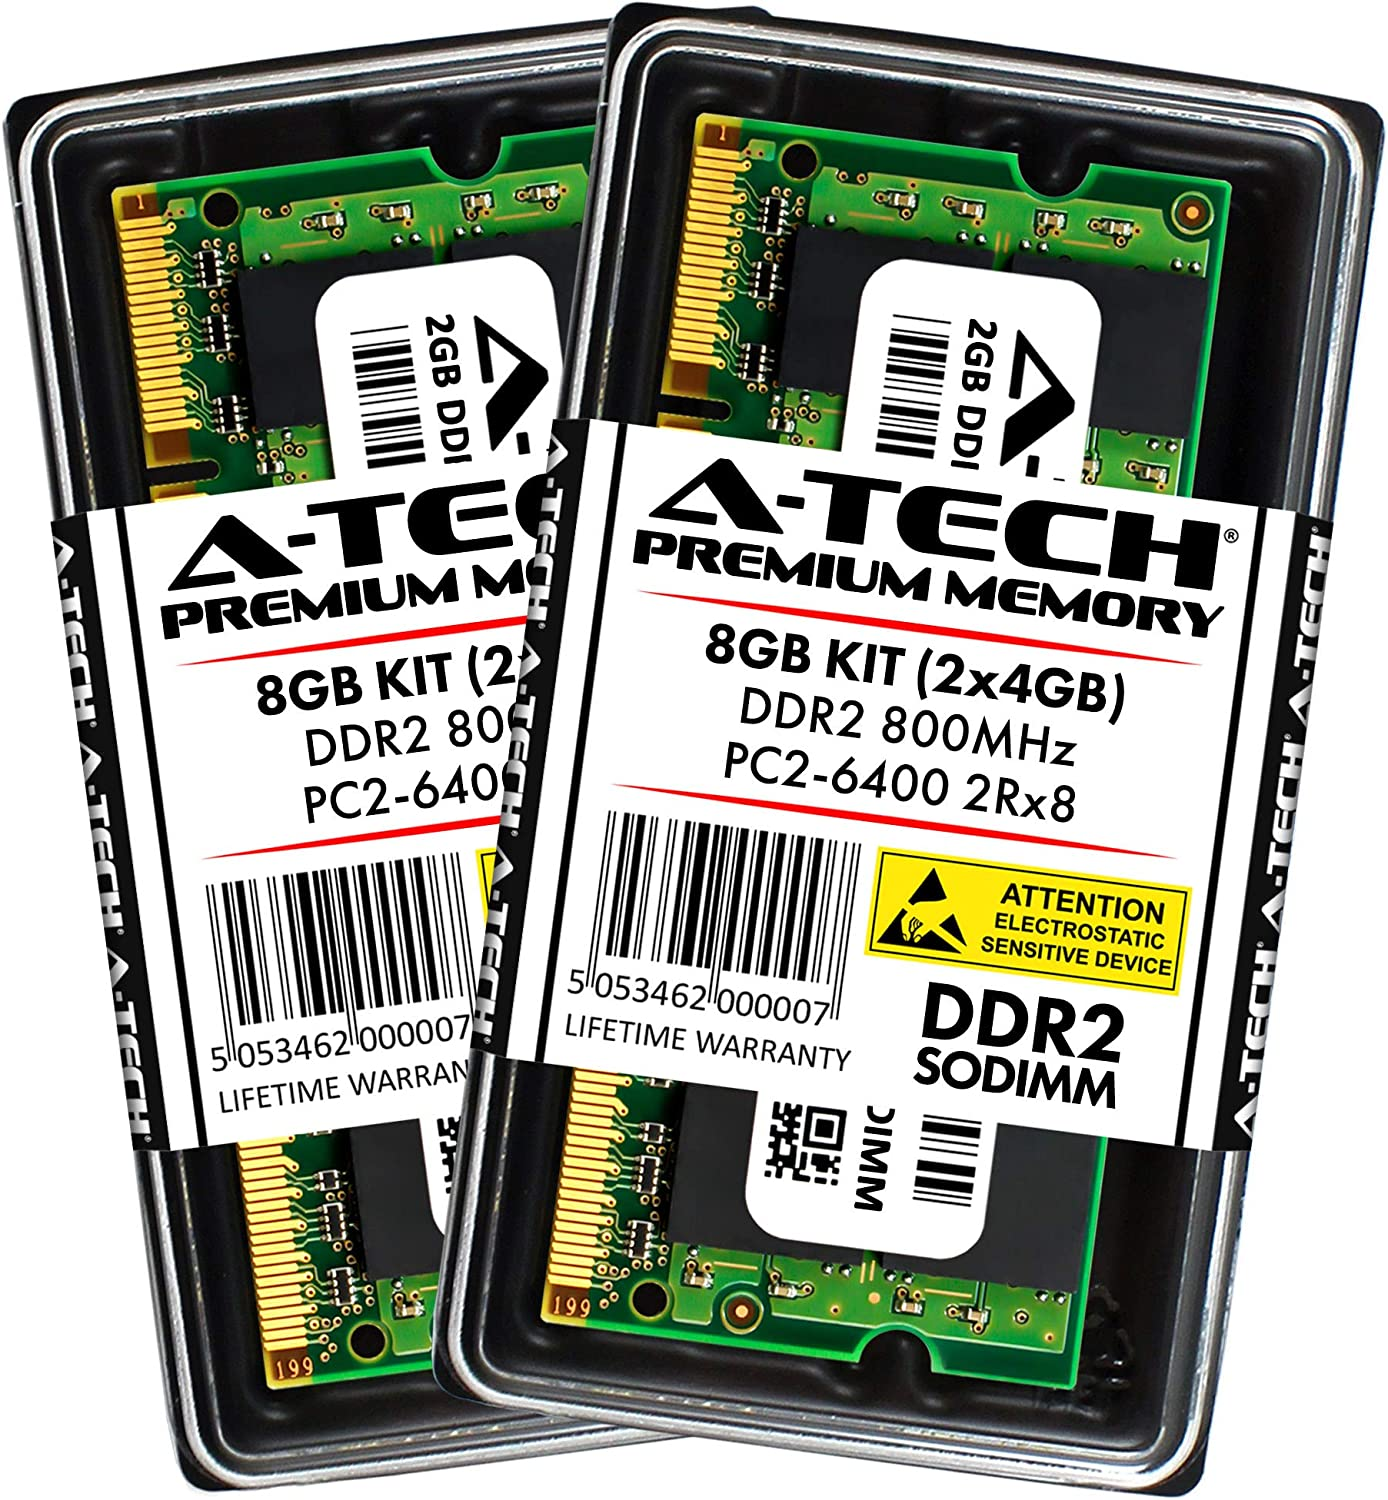 A-Tech 8GB Kit (2x4GB) Max RAM for Dell Inspiron 1440, 1545, 1546, 1750, Zino HD 400 - DDR2 800Mhz PC2-6400 SODIMM Max Memory Upgrade